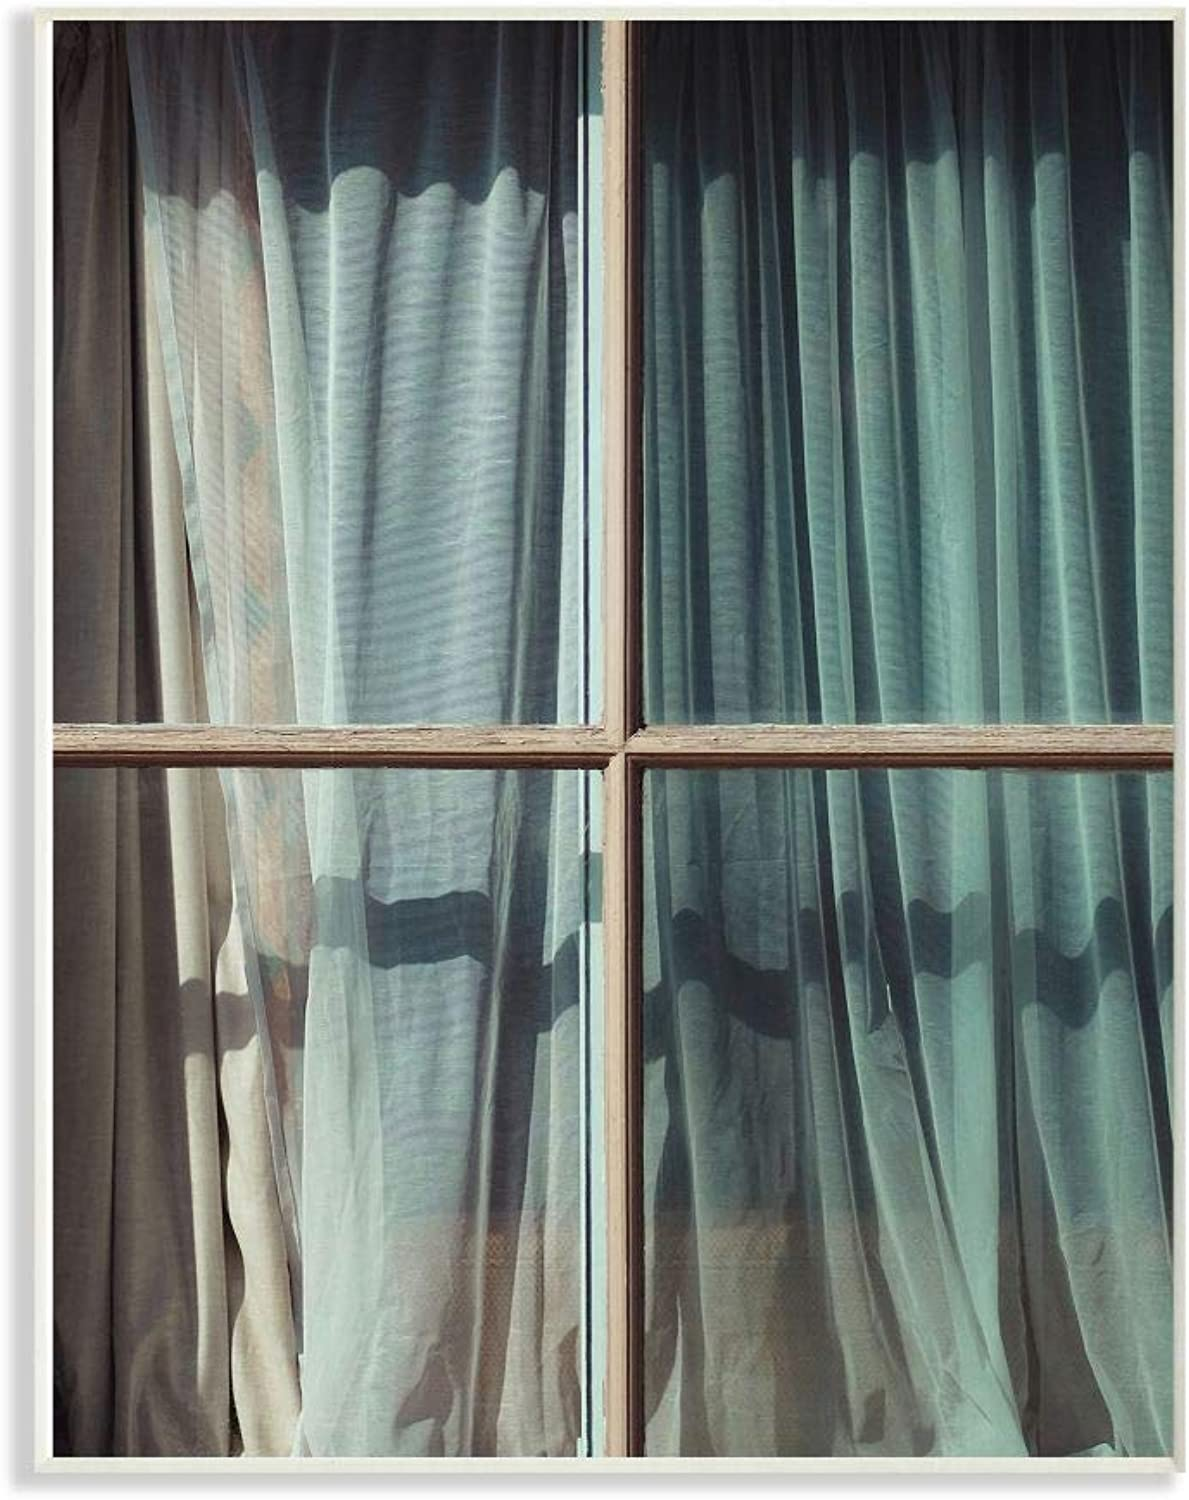 The Stupell Home Decor Collection pap-102_wd_12x18 Old Window Curtain bluee Cyan Photography Wall Plaque Art, 12 x 18